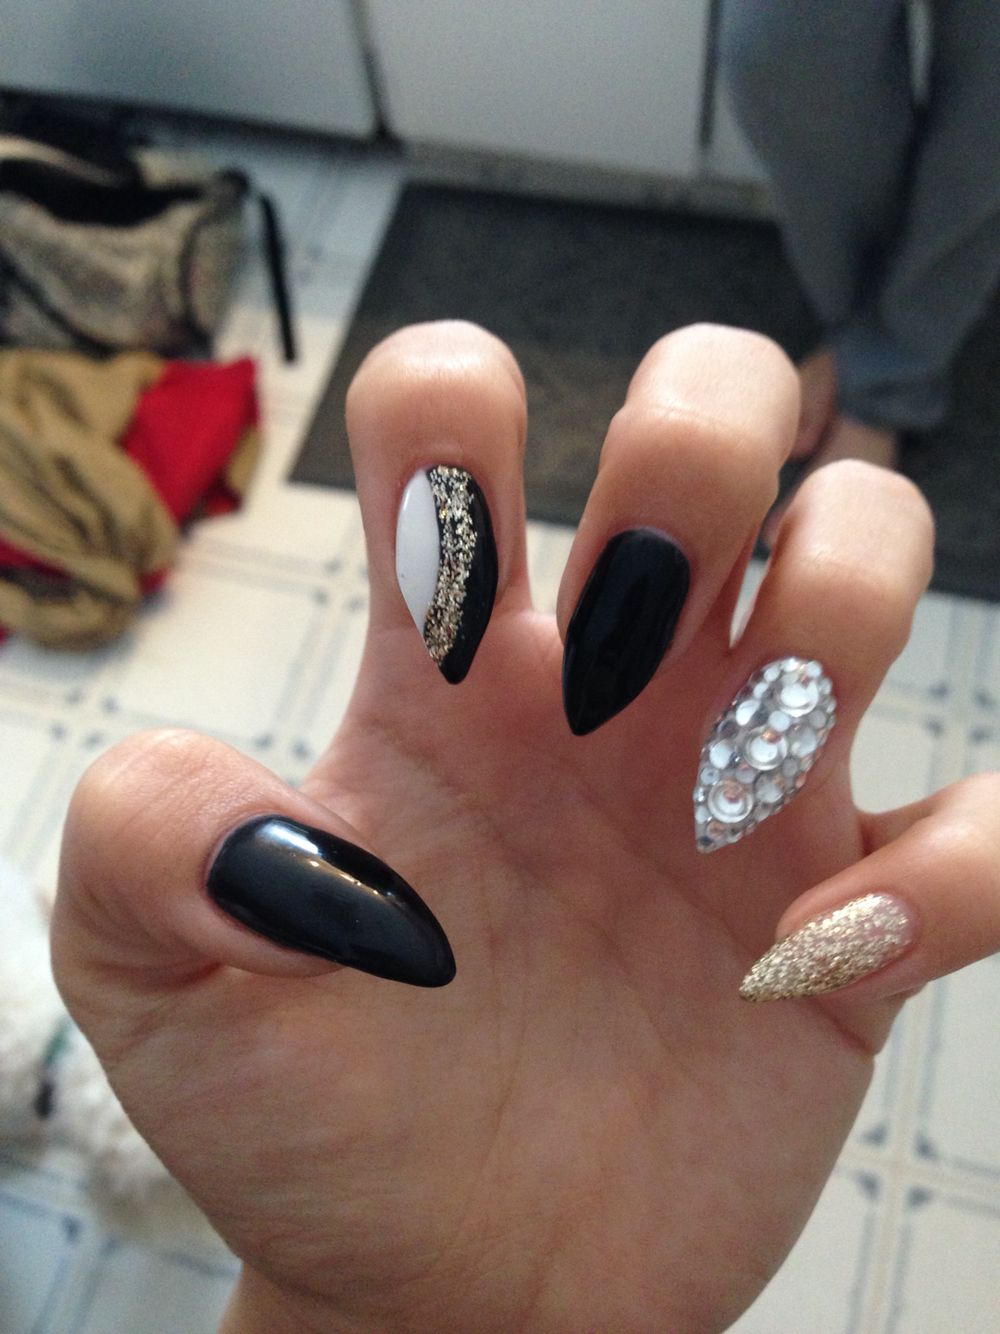 New Years nails | Almond Nails | Pinterest | Makeup, Manicure and ...